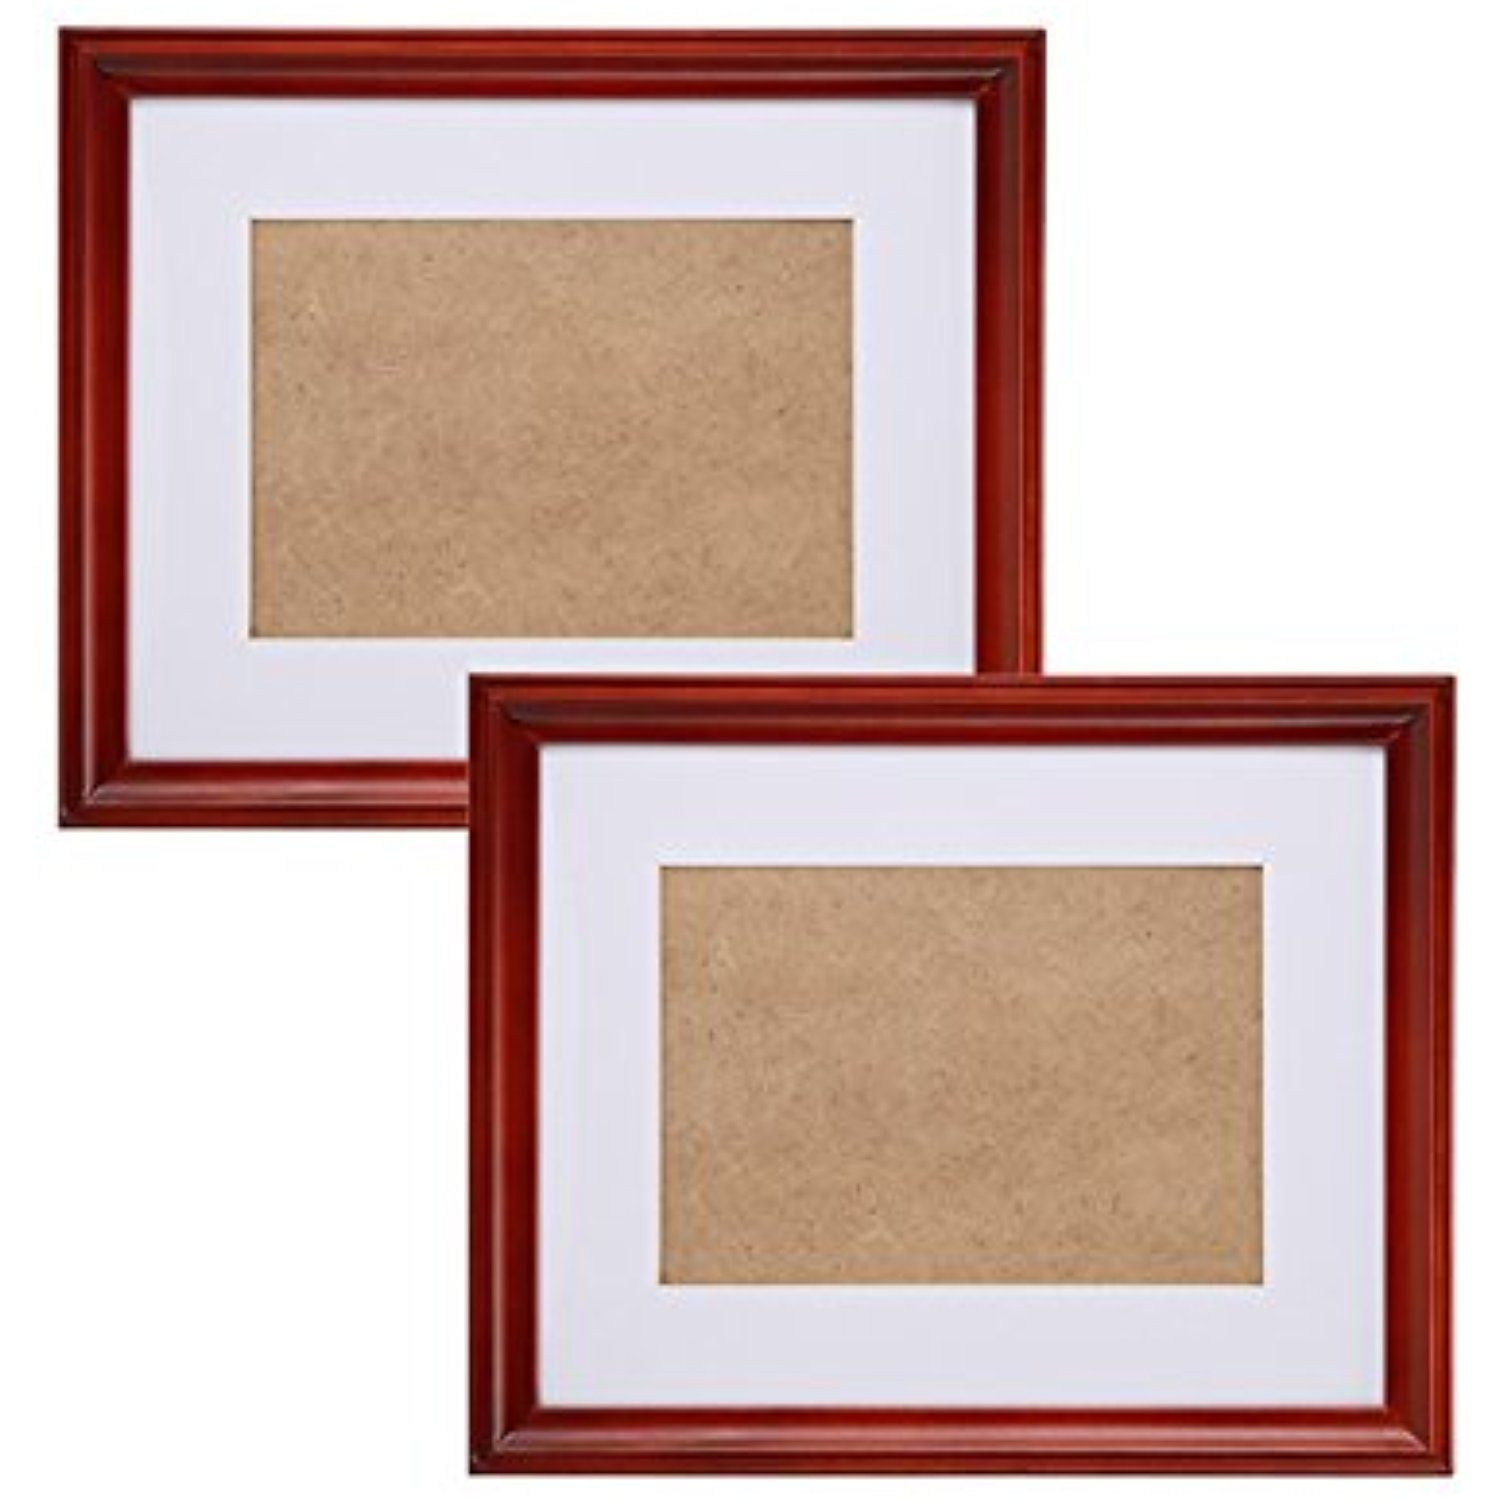 Fastnova 6x8 inch narrow cherry red wood picture frames made to fastnova 6x8 inch narrow cherry red wood picture frames made to display picture 35x5 with mat or 5x7 without mat table top and wall mounting material jeuxipadfo Image collections